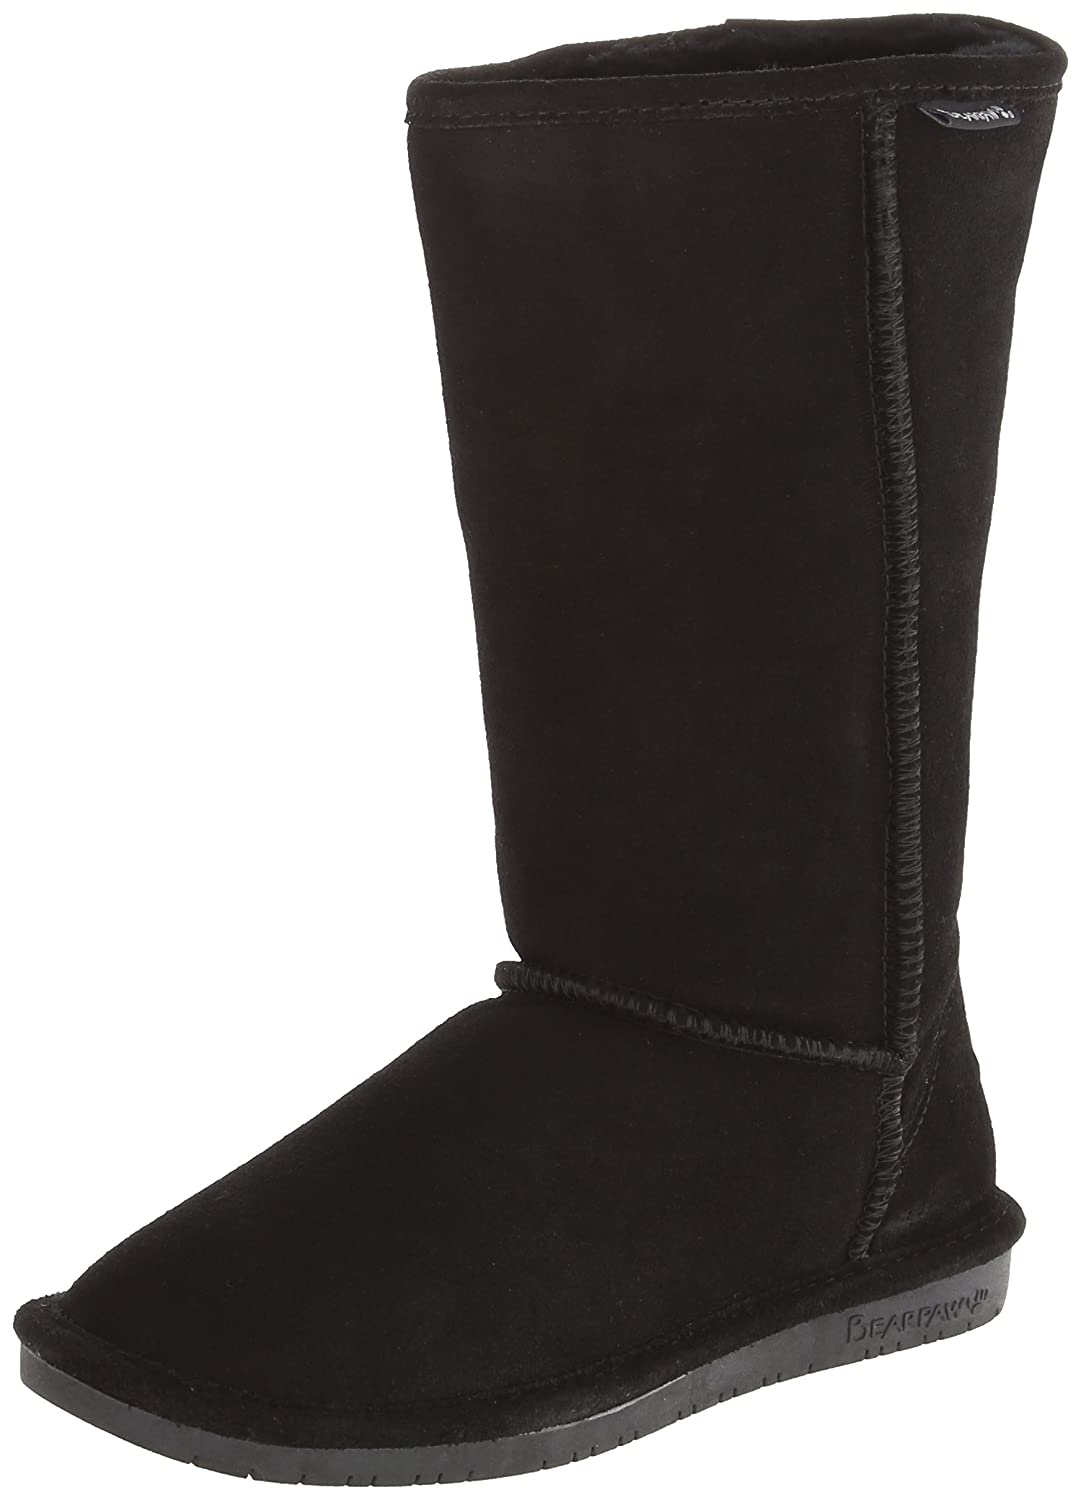 BEARPAW Women's Emma Tall Mid Calf Boot B077R3ZXF9 38 M EU / 7 B(M) US|Black